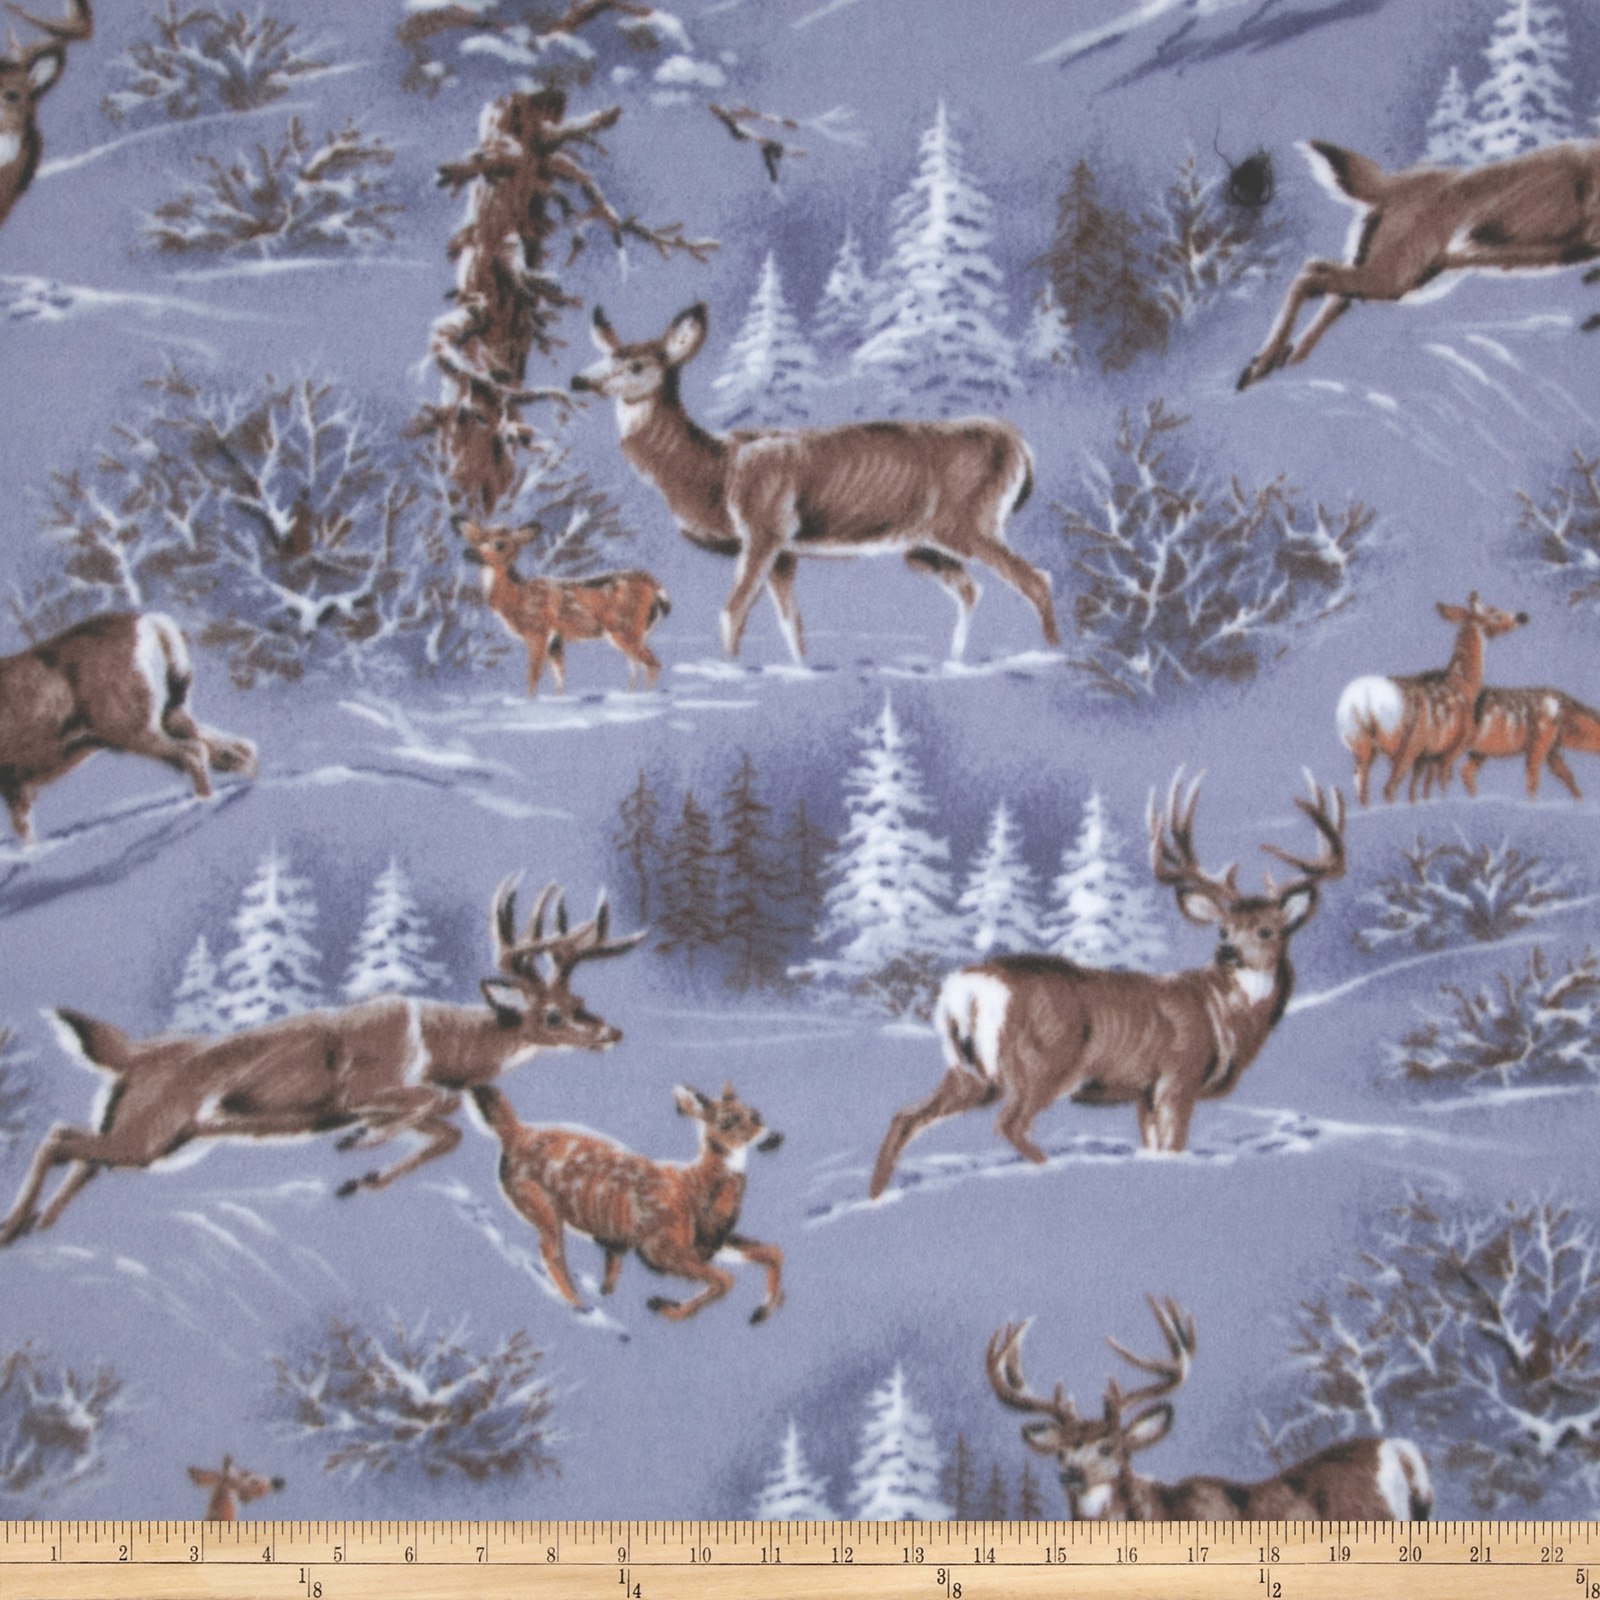 WinterFleece Deer in the Snow Fabric